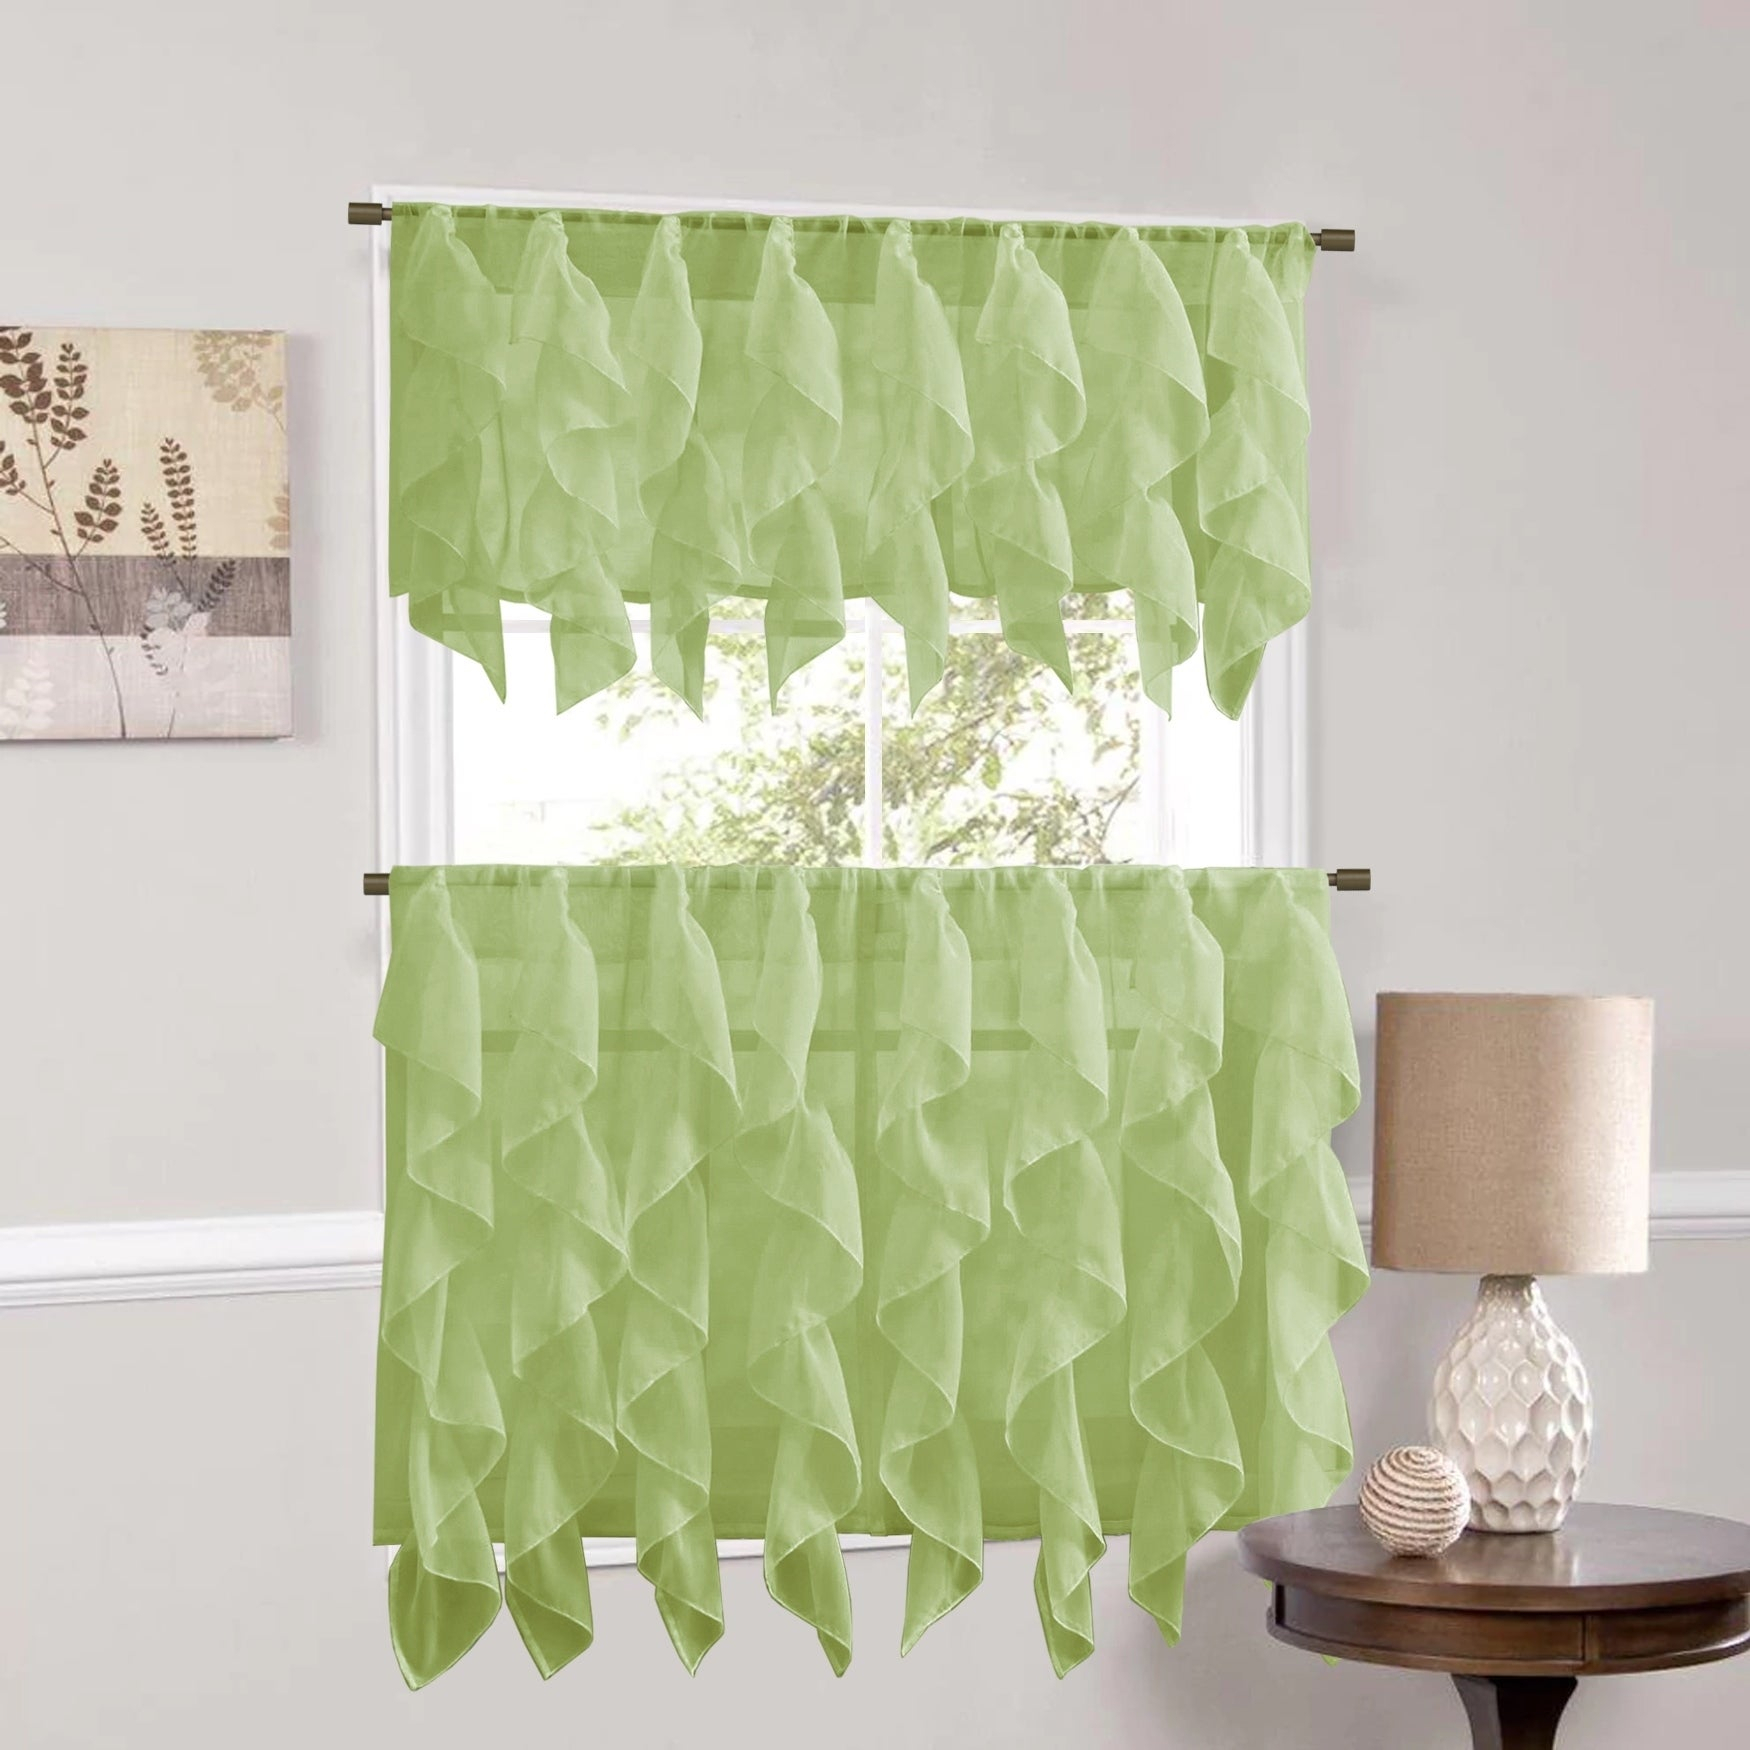 Vertical Ruffled Waterfall Window Curtain Pieces- Valance And Tiers Options  (Sage) for Maize Vertical Ruffled Waterfall Valance And Curtain Tiers (Image 19 of 20)